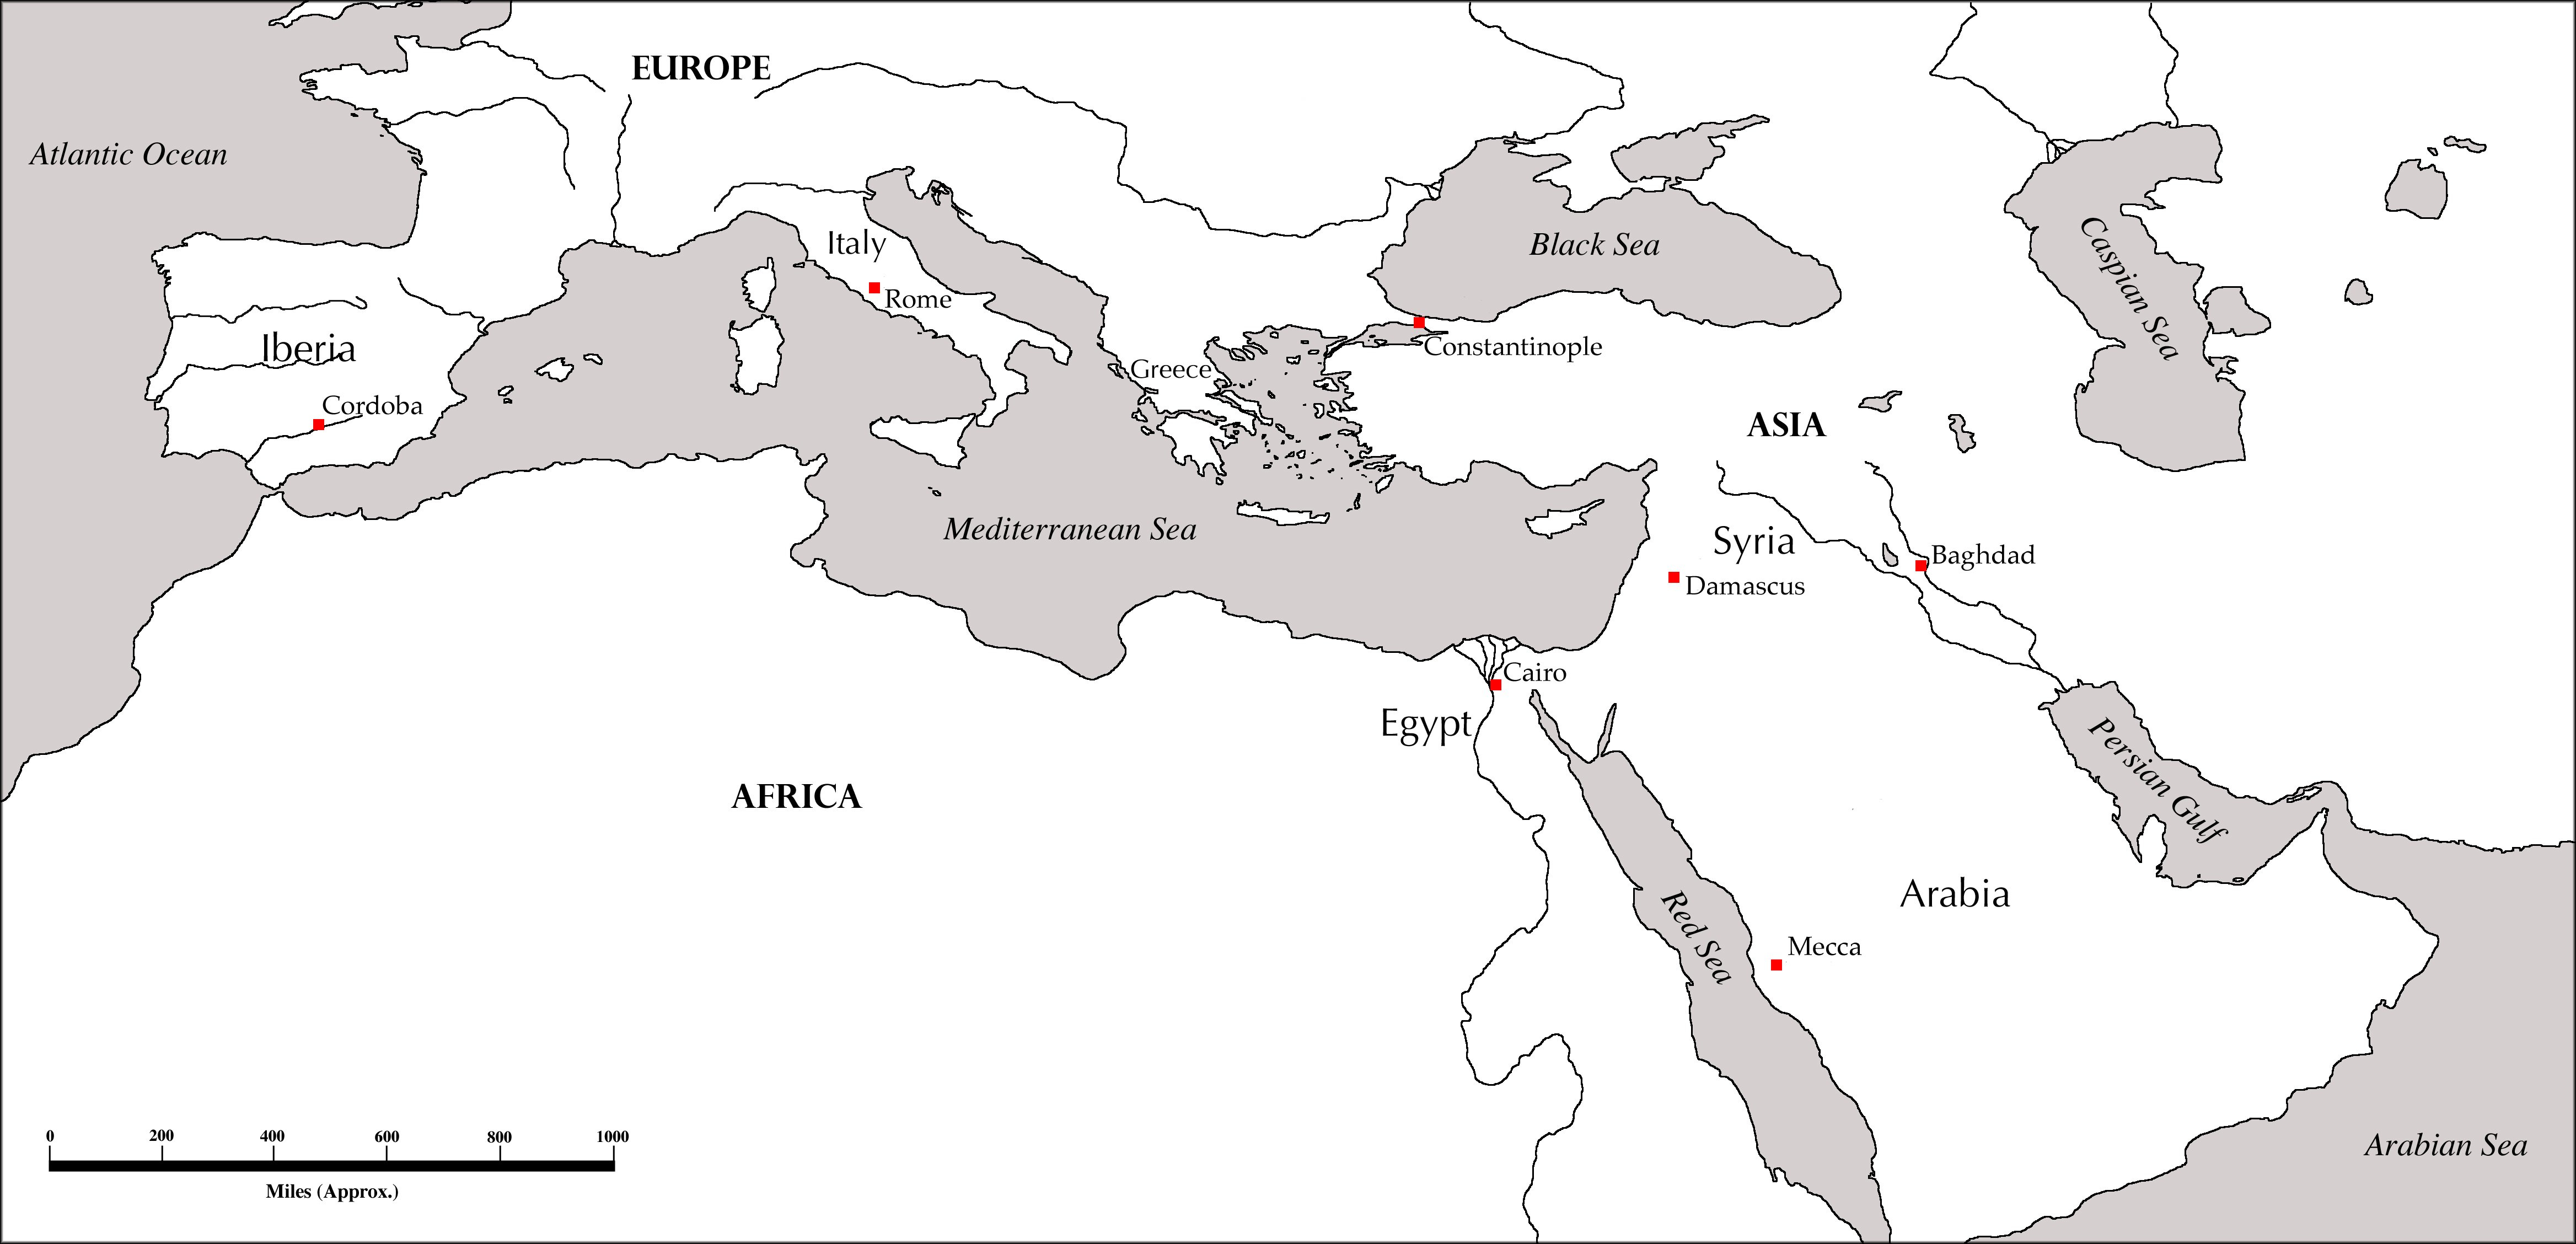 Maps For Rise Of Islam Worksheet